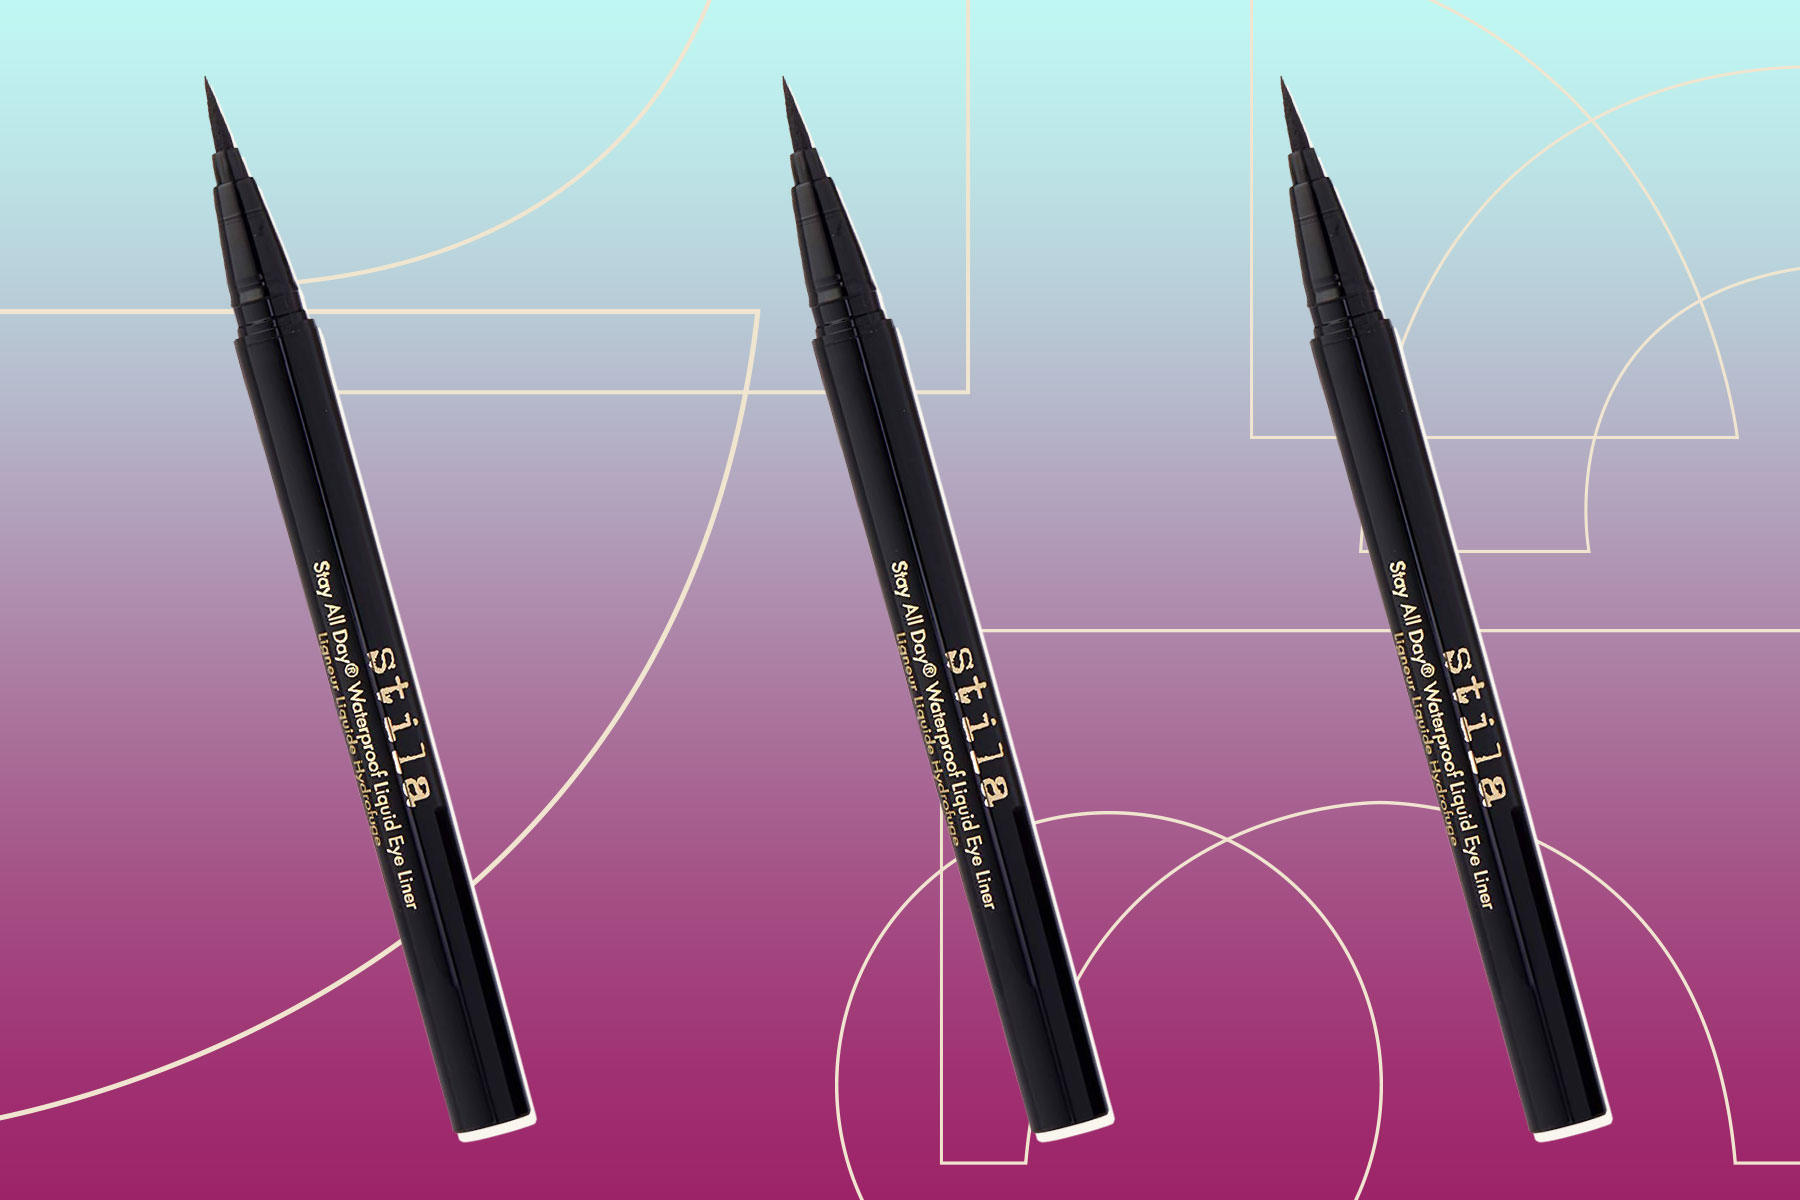 """This $22 Water-Proof Eyeliner Is the """"Longest Lasting, Most Precise Eyeliner"""" According to Shoppers"""